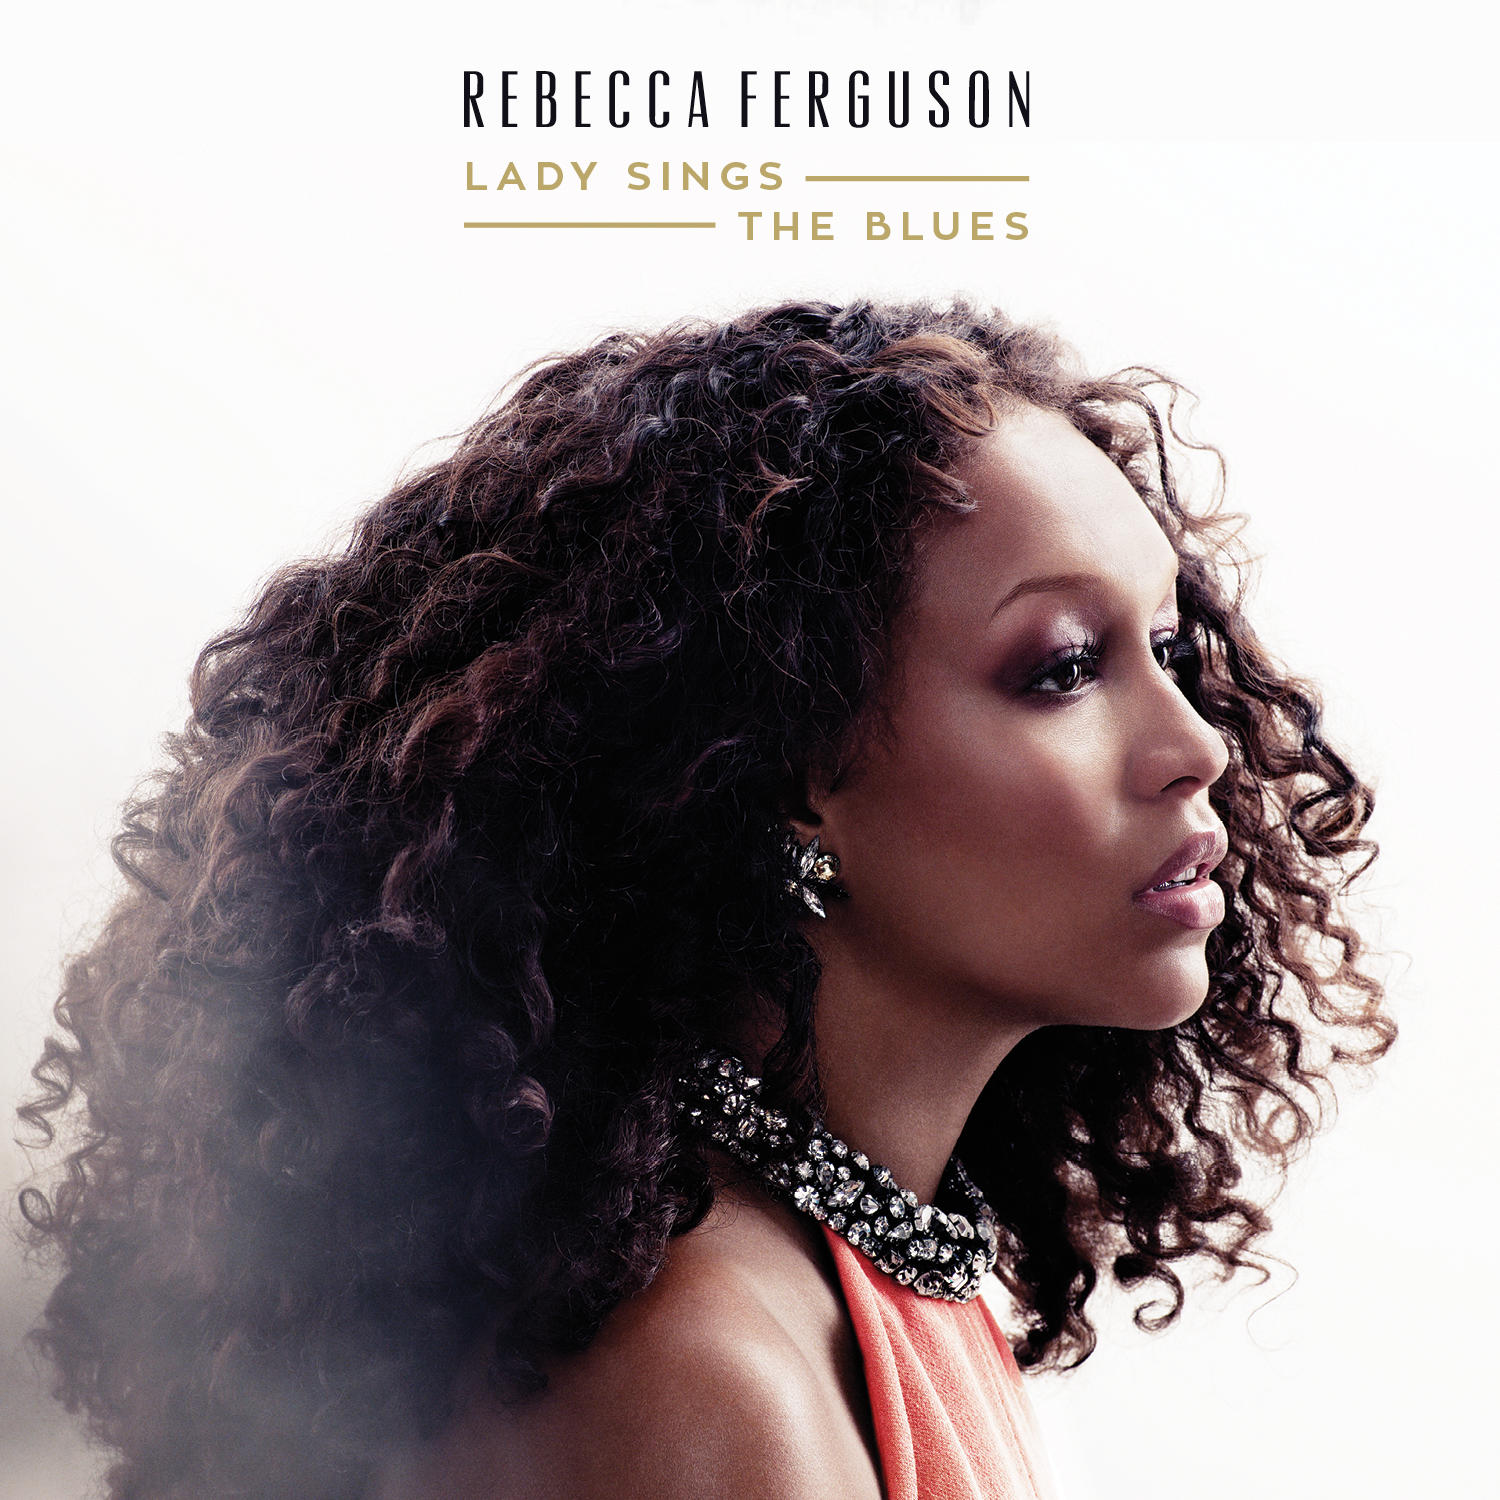 Britain's Got Talent Star Rebecca Ferguson's New Album 'Lady Sings the Blues' Reinterprets Billie Holiday – Out Now!